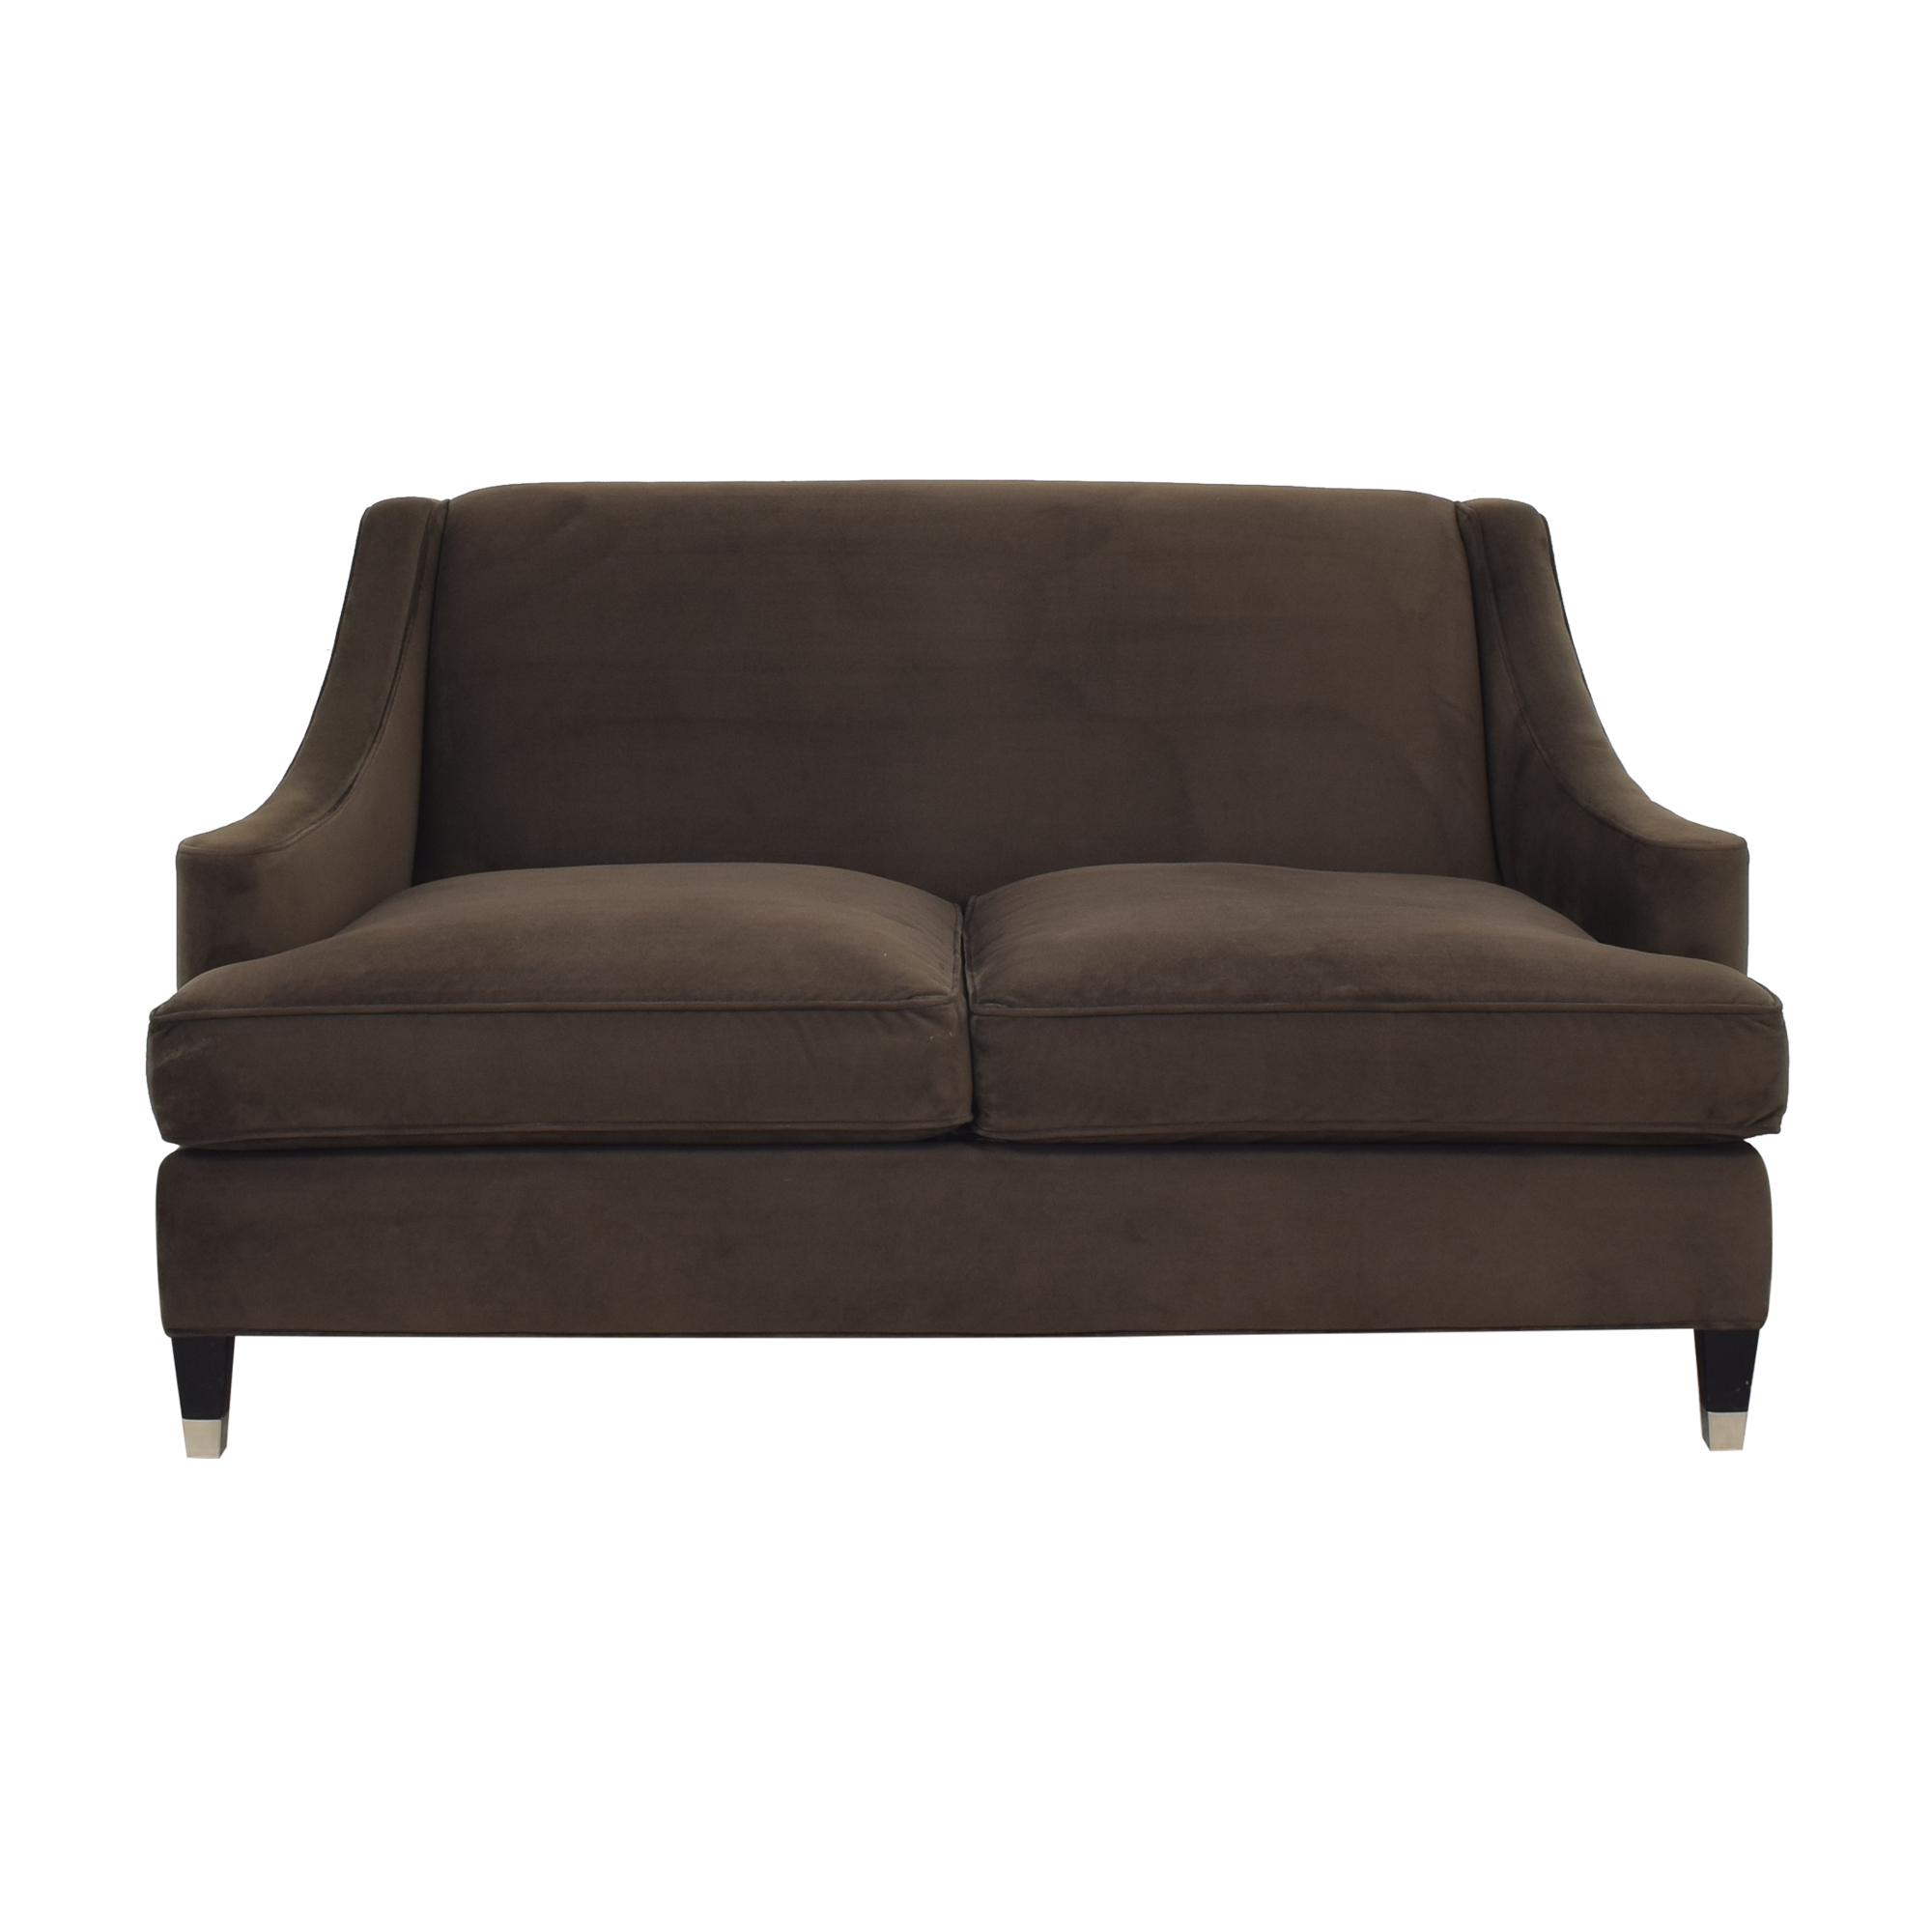 buy Room & Board Loring Walnut Loveseat Room & Board Sofas